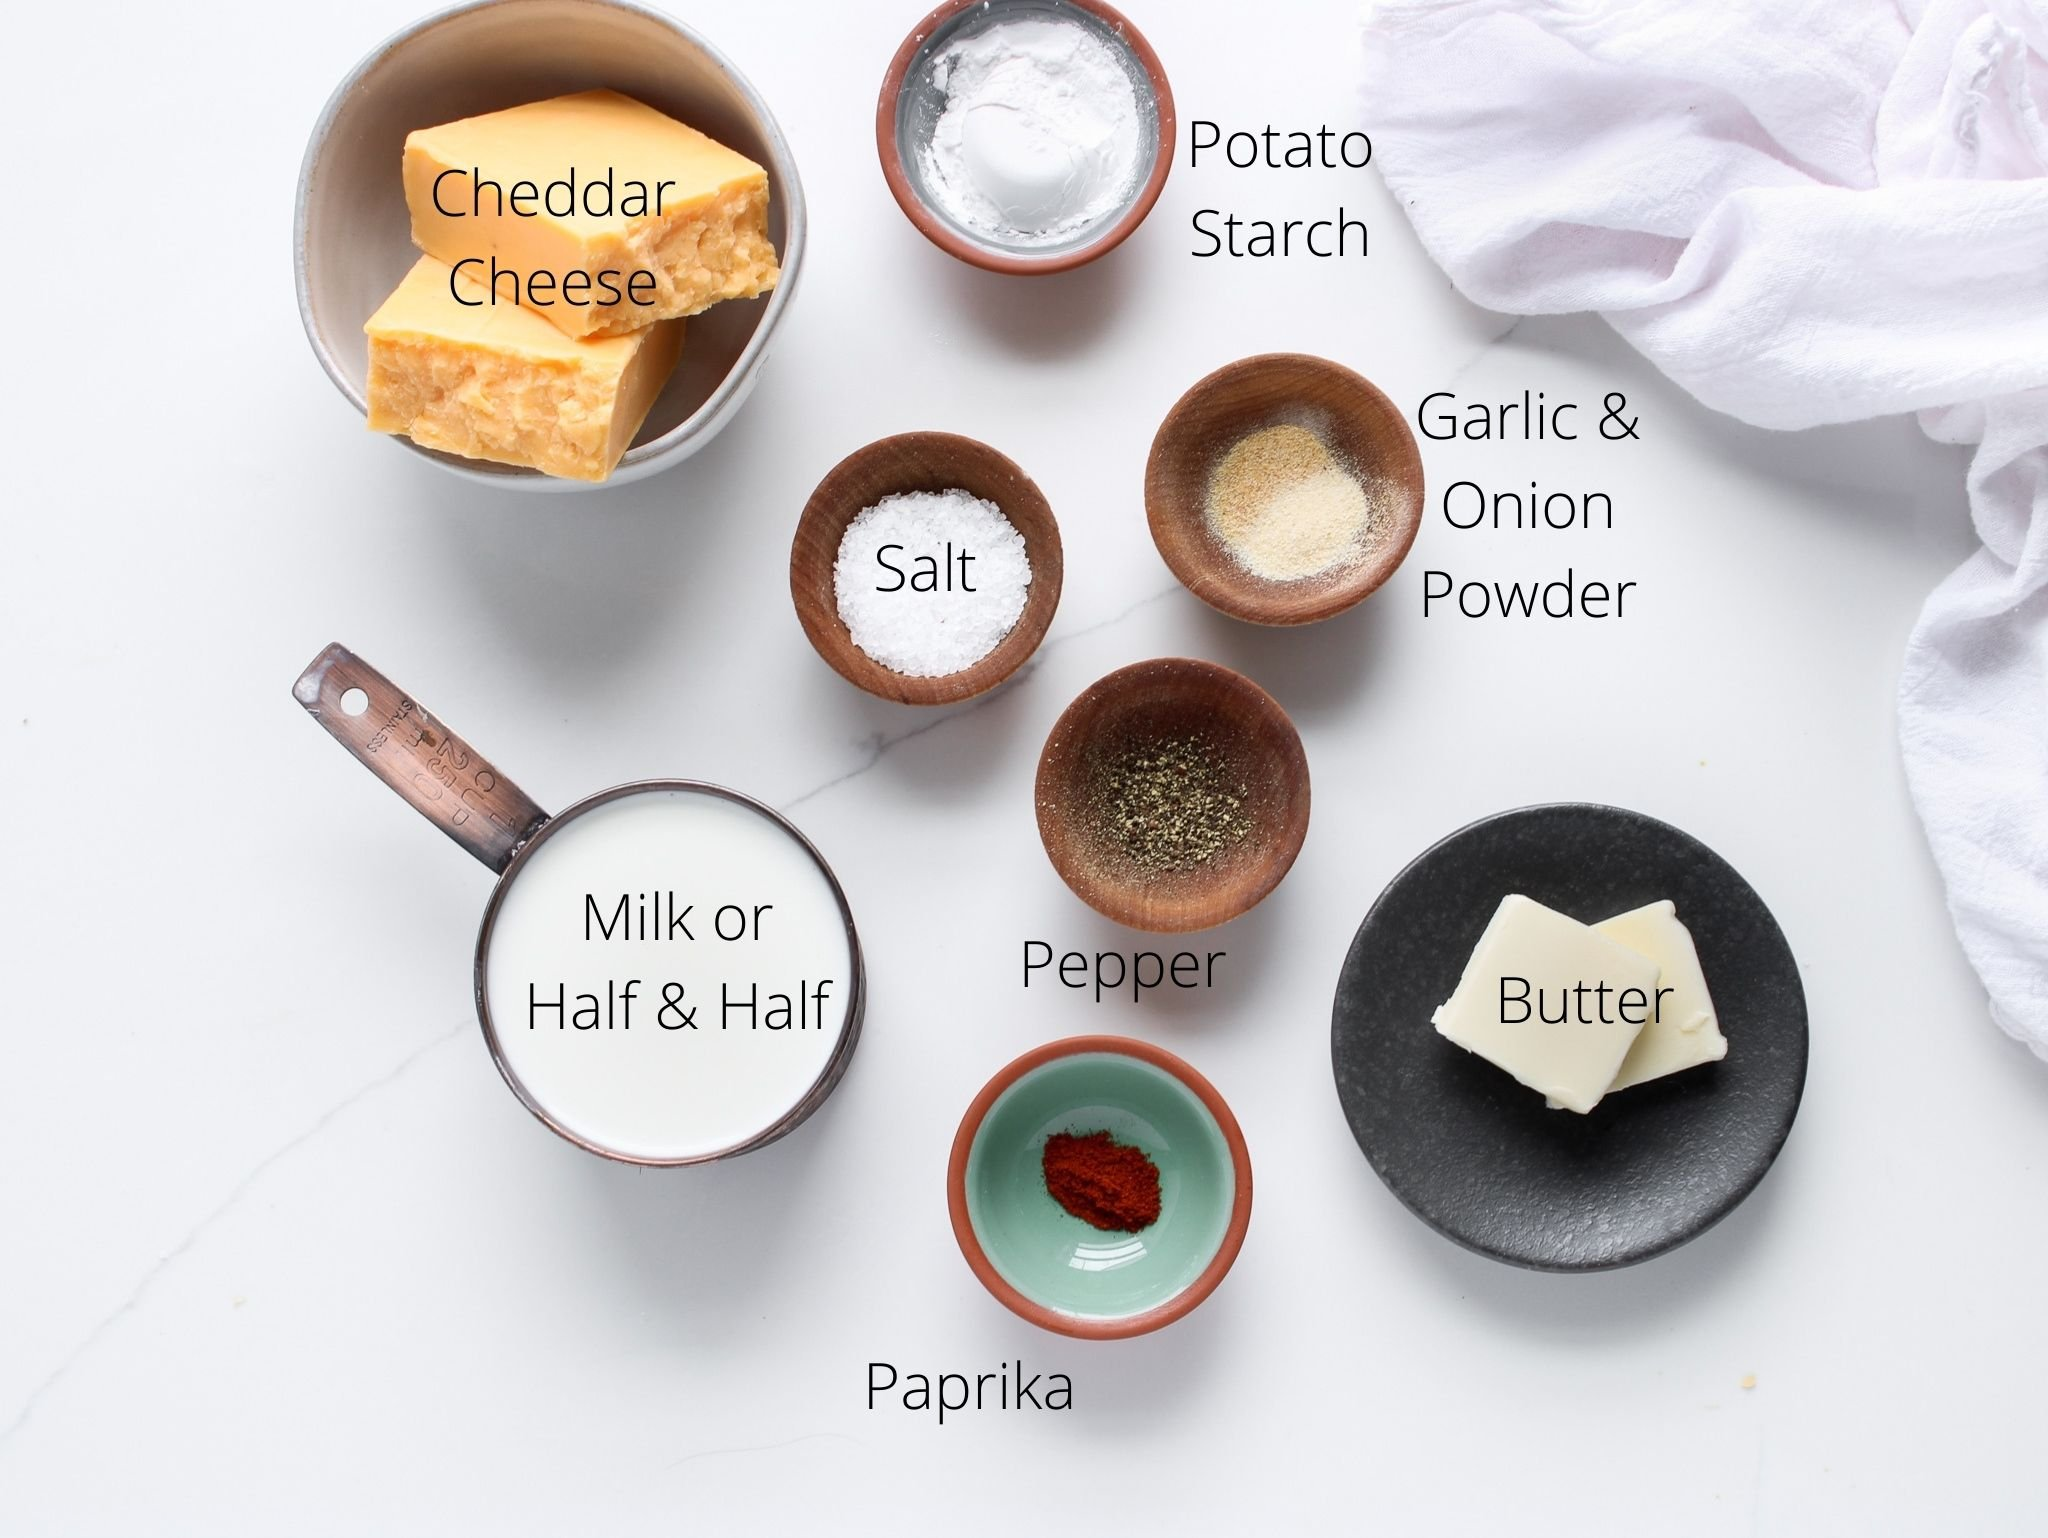 Gluten-free cheddar cheese sauce ingredients laid out including butter, potato starch, milk (of half and half), garlic, onion, paprika, salt, pepper and of course cheddar cheese ready to be turned into a creamy sauce.